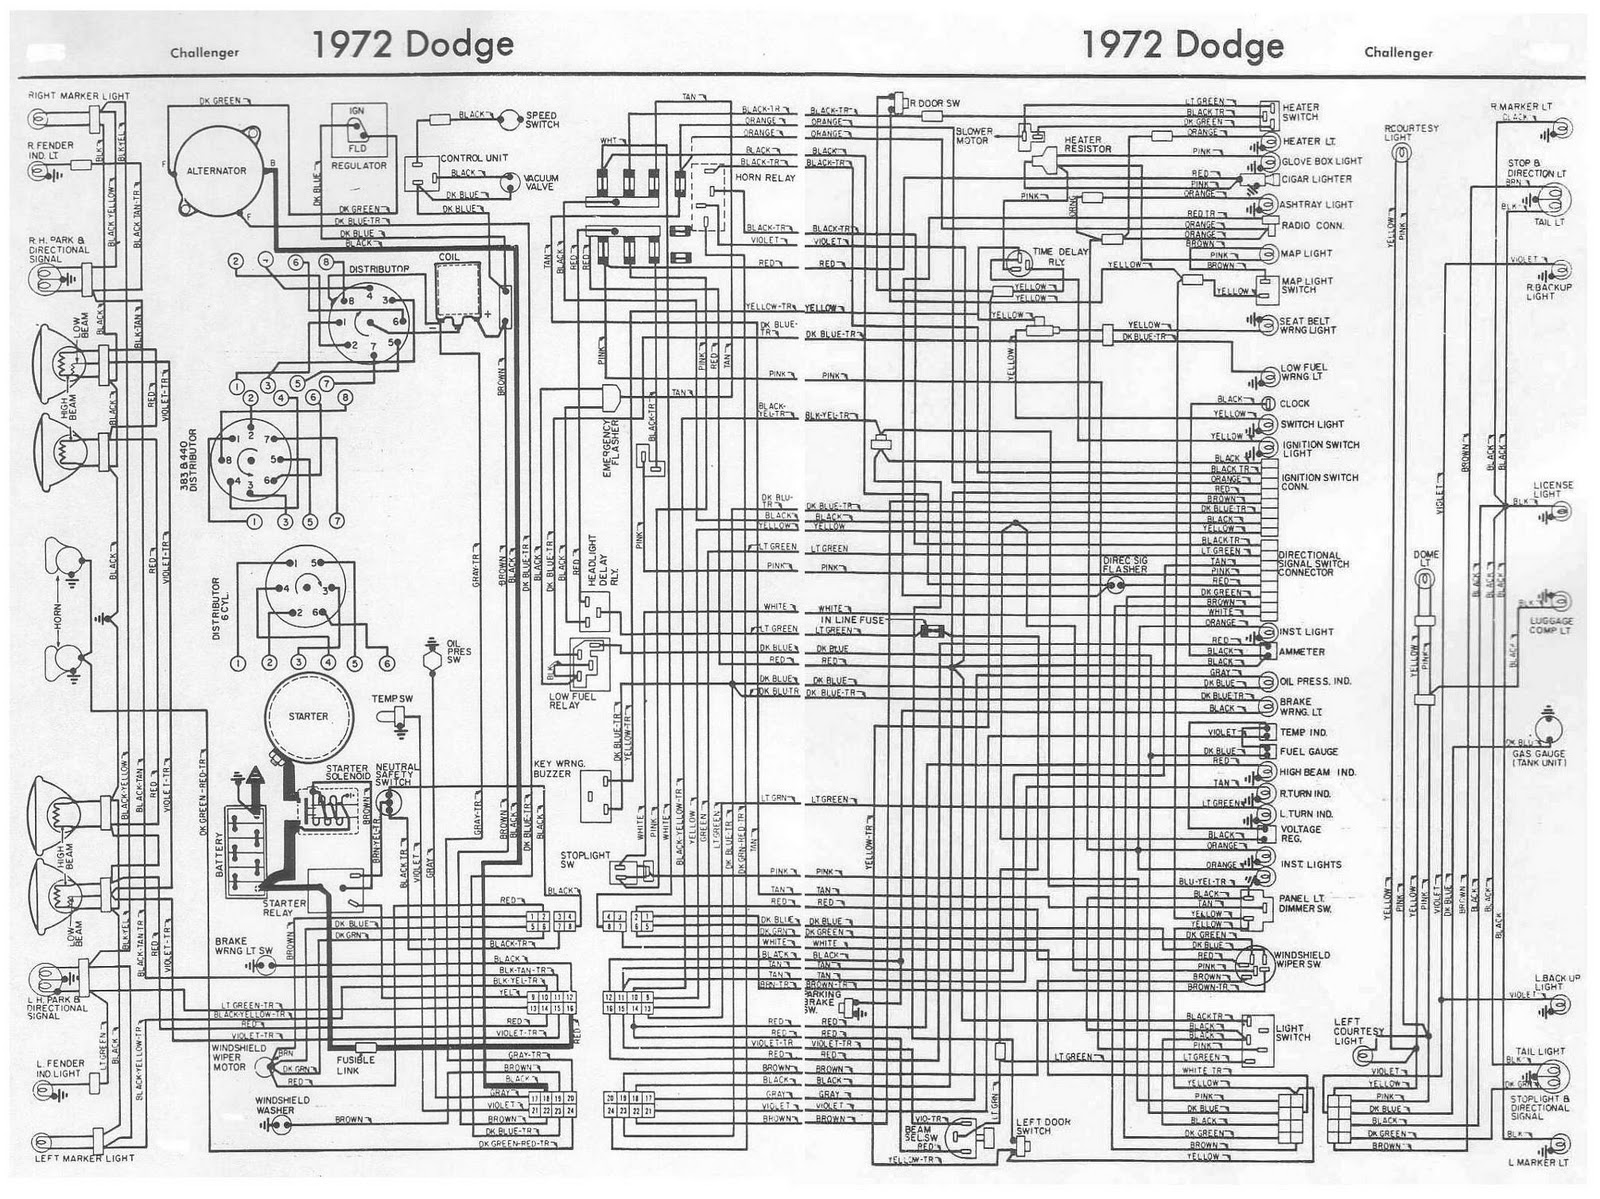 1955 dodge wiring diagram dodge challenger wiring diagram dodge wiring diagrams online description dodge challenger 1972 complete wiring diagram